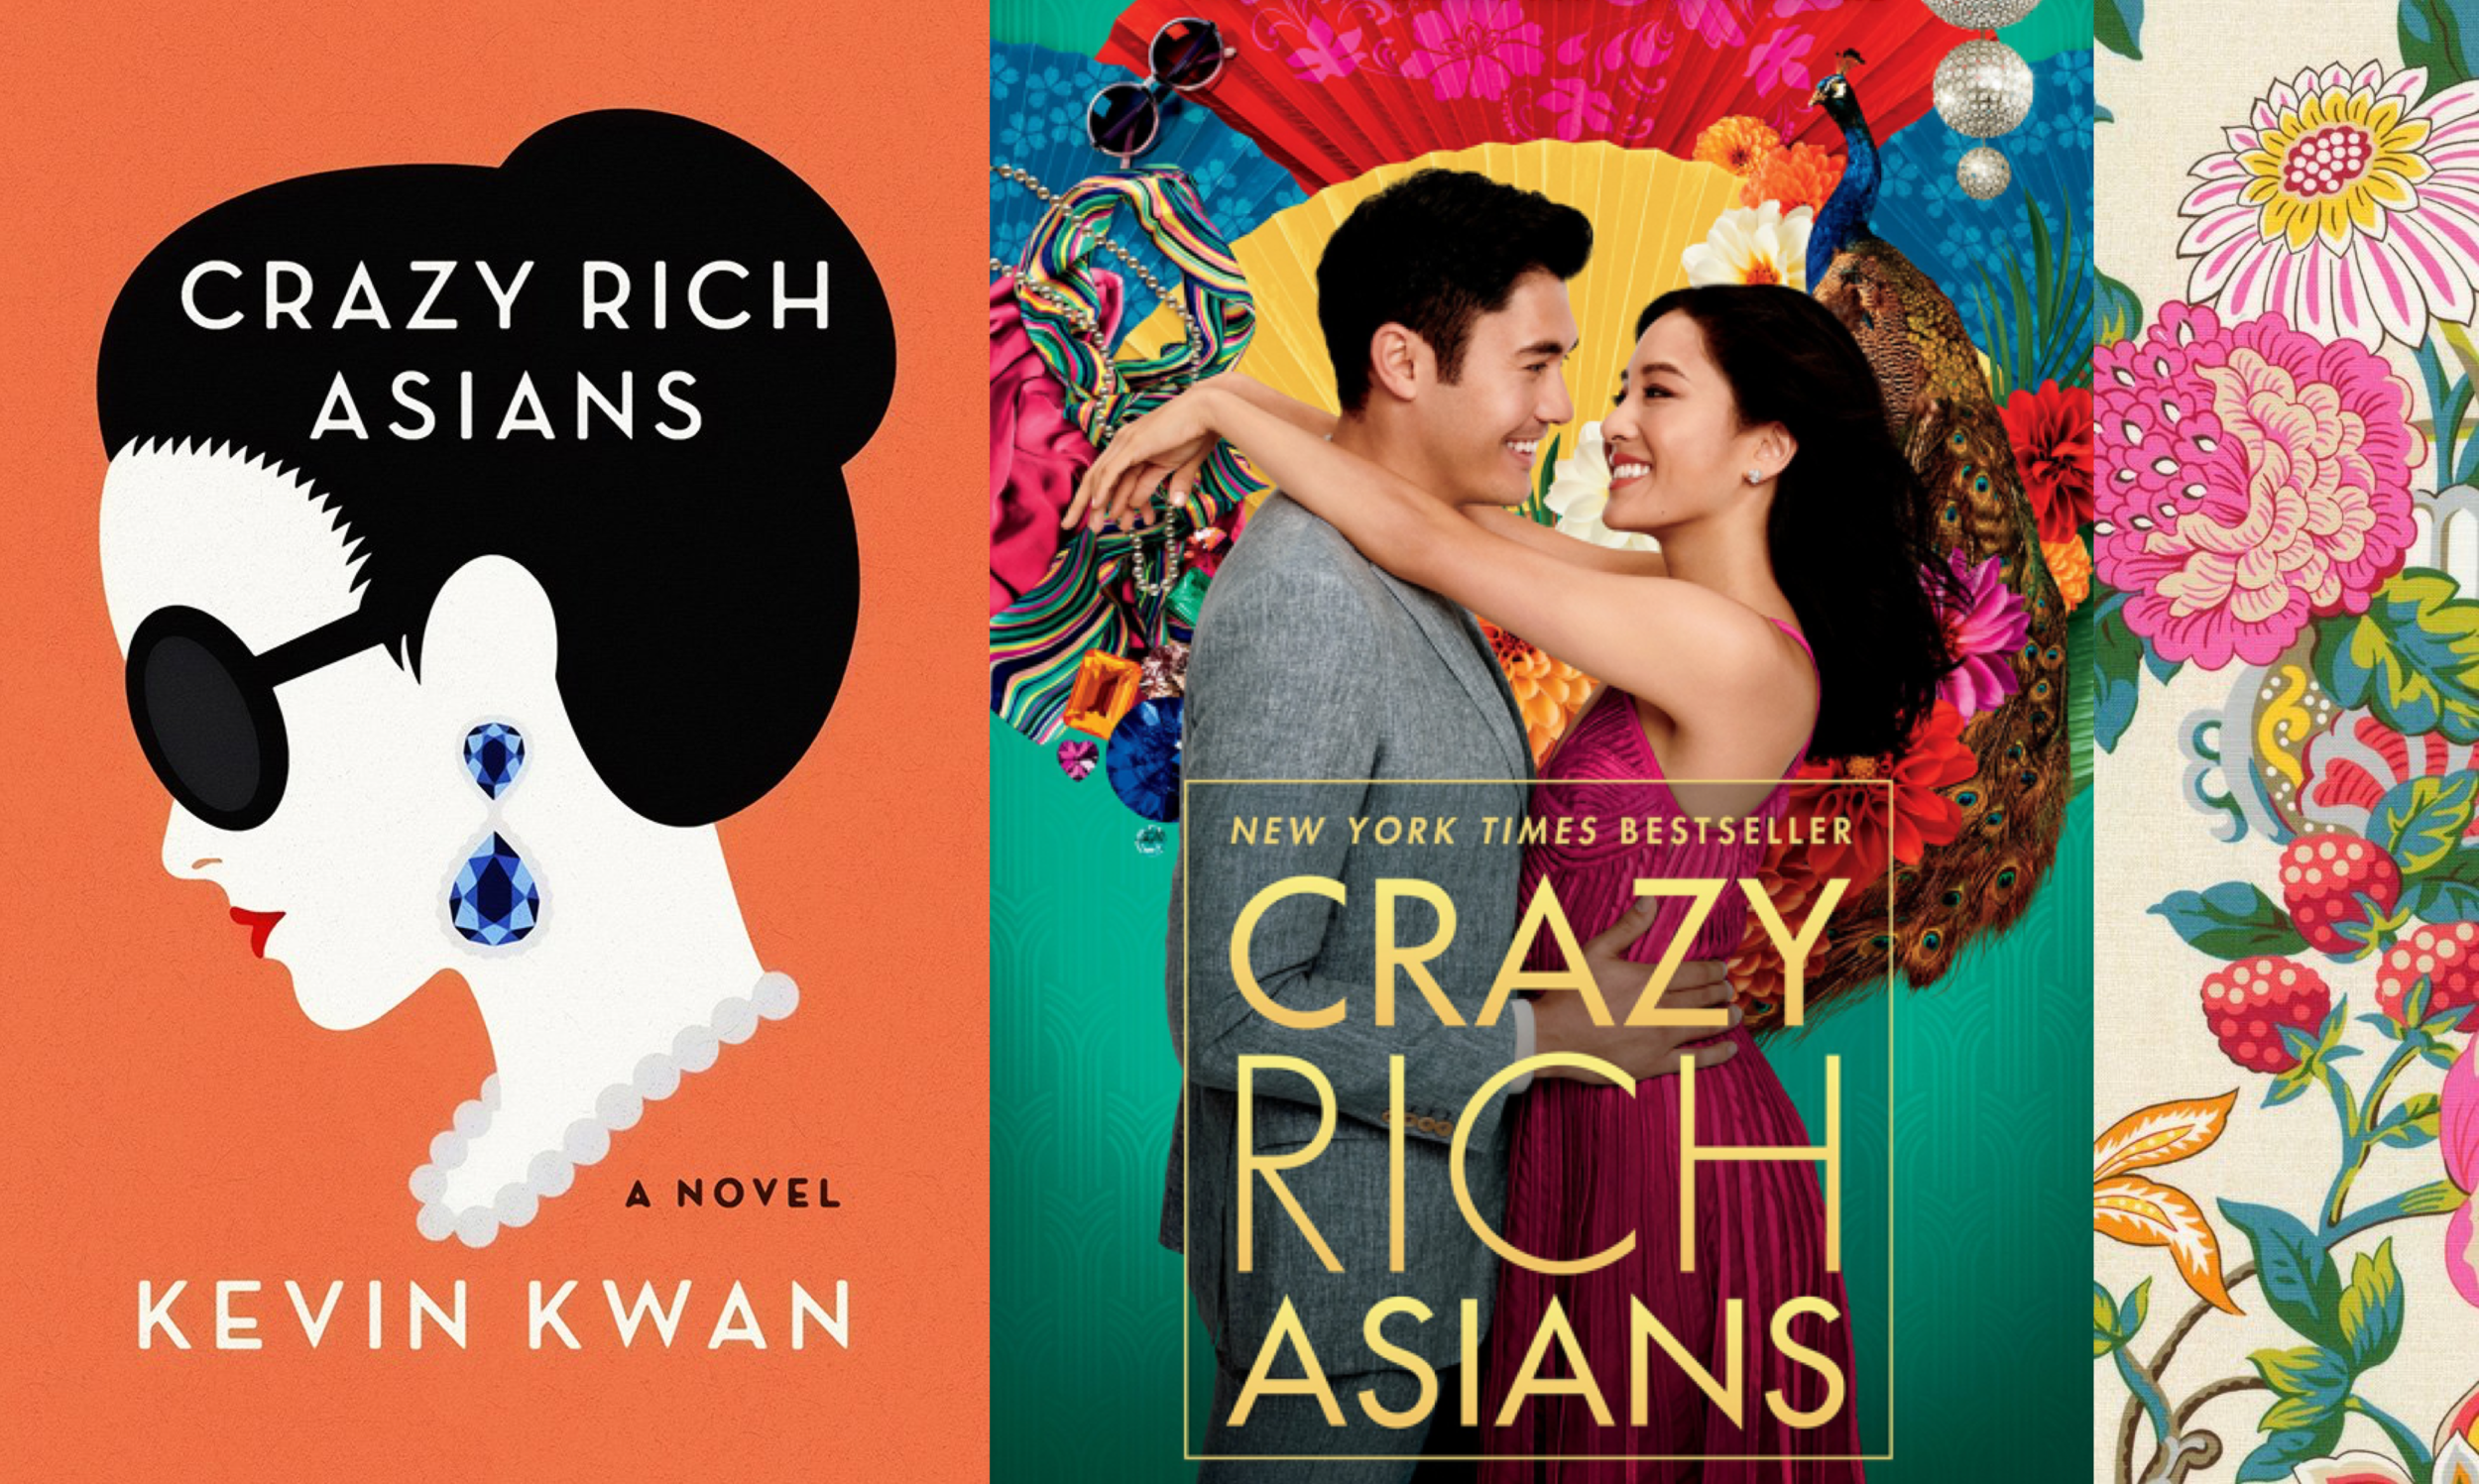 Crazy Rich Asians: novel by Keven Kwan, movie directed by Jon M. Chu